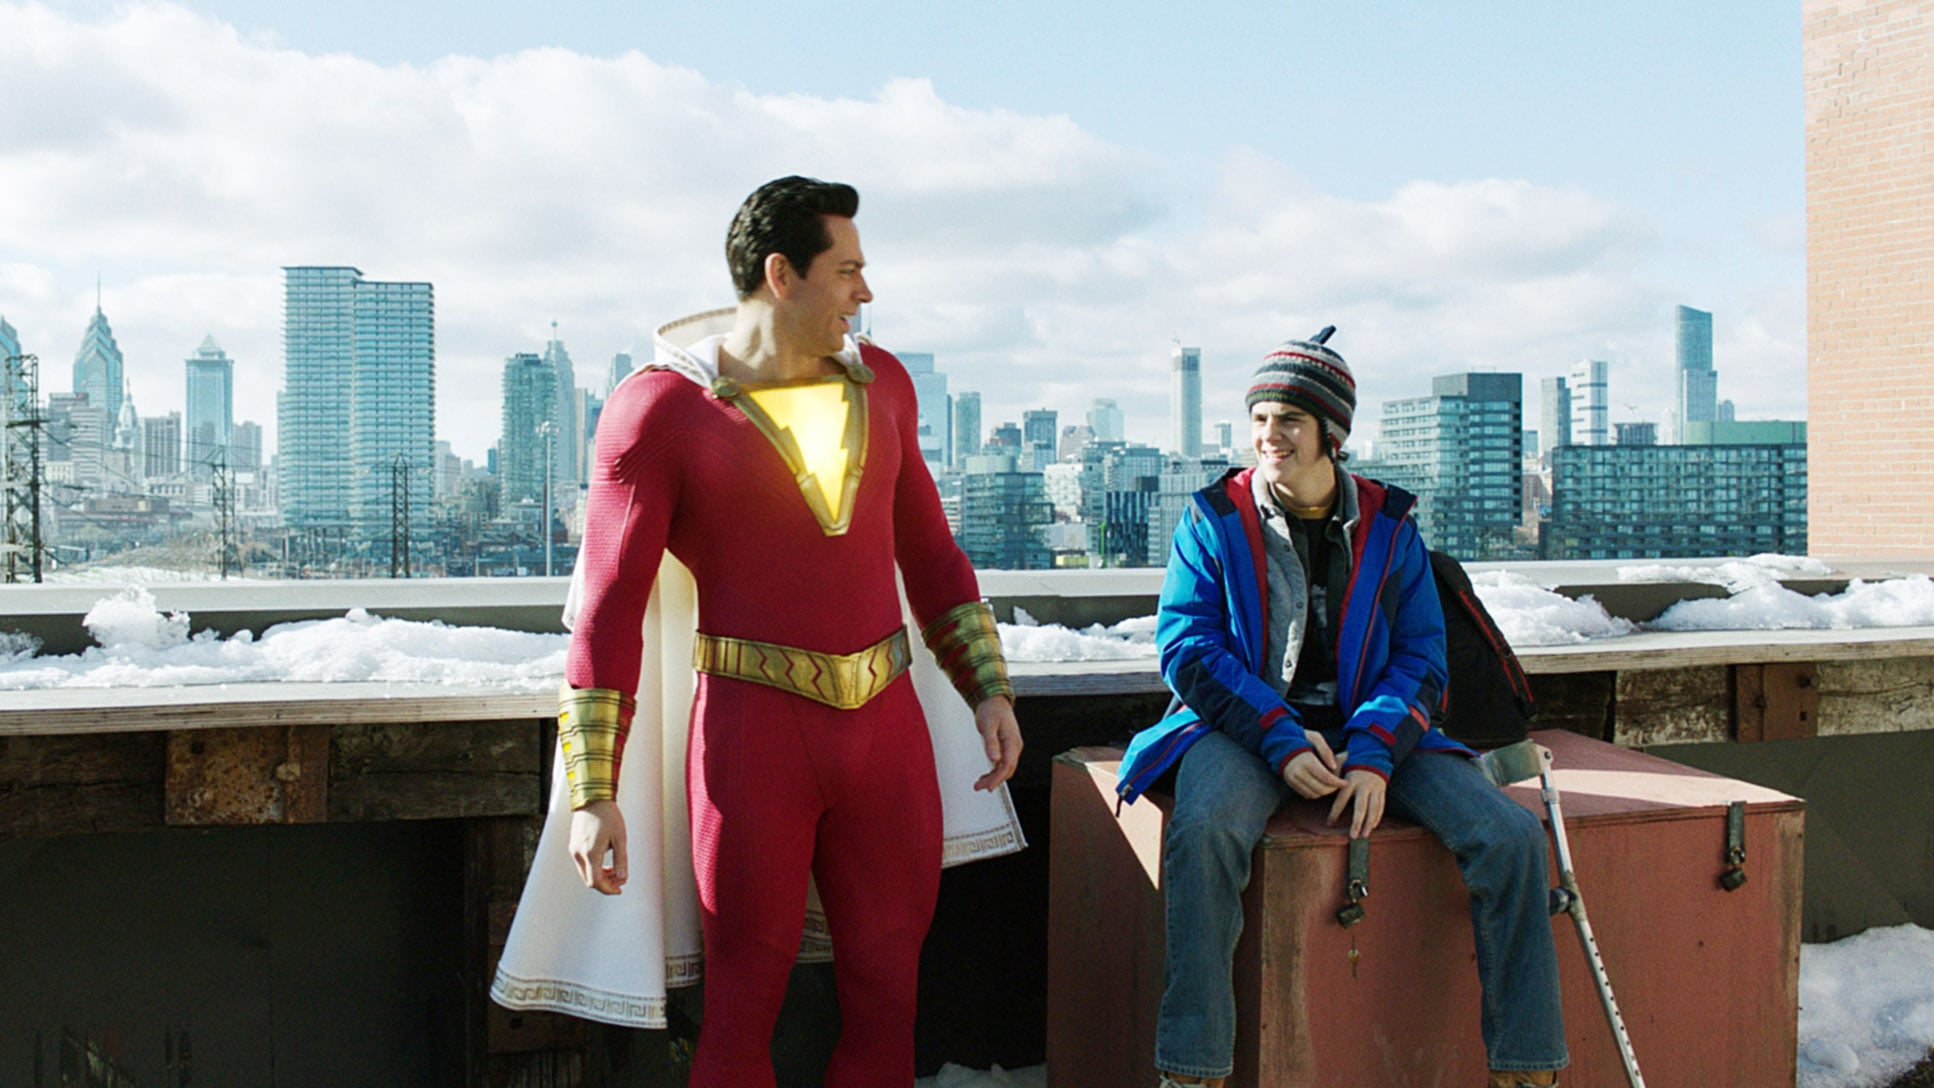 SHAZAM!, from left: Zachary Levi (as Shazam), Jack Dylan Grazer, 2019.  Warner Brothers / Courtesy Everett Collection